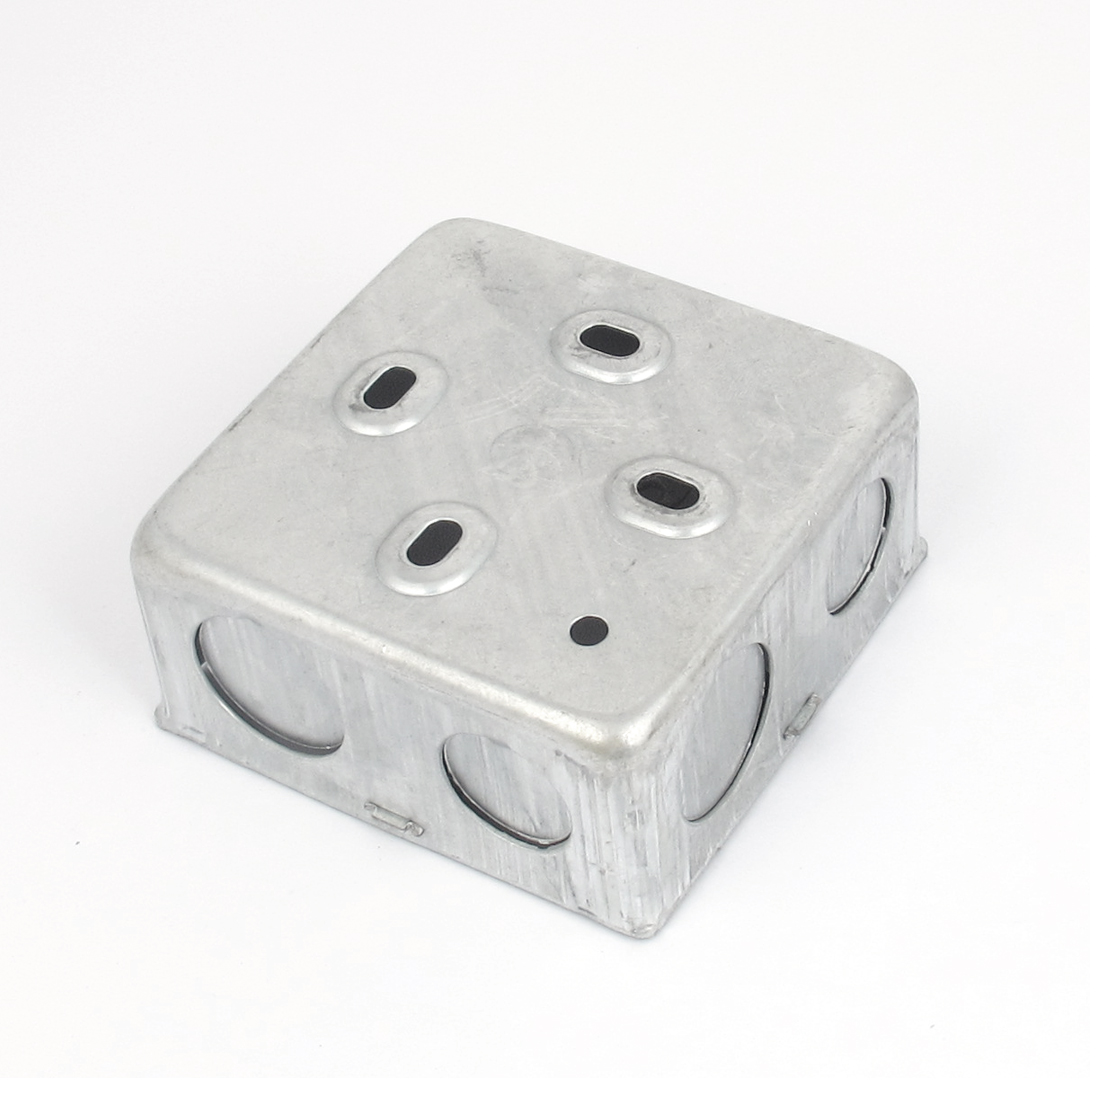 86mm x 86mm x 40mm Metal Switch Junction Project Box Socket